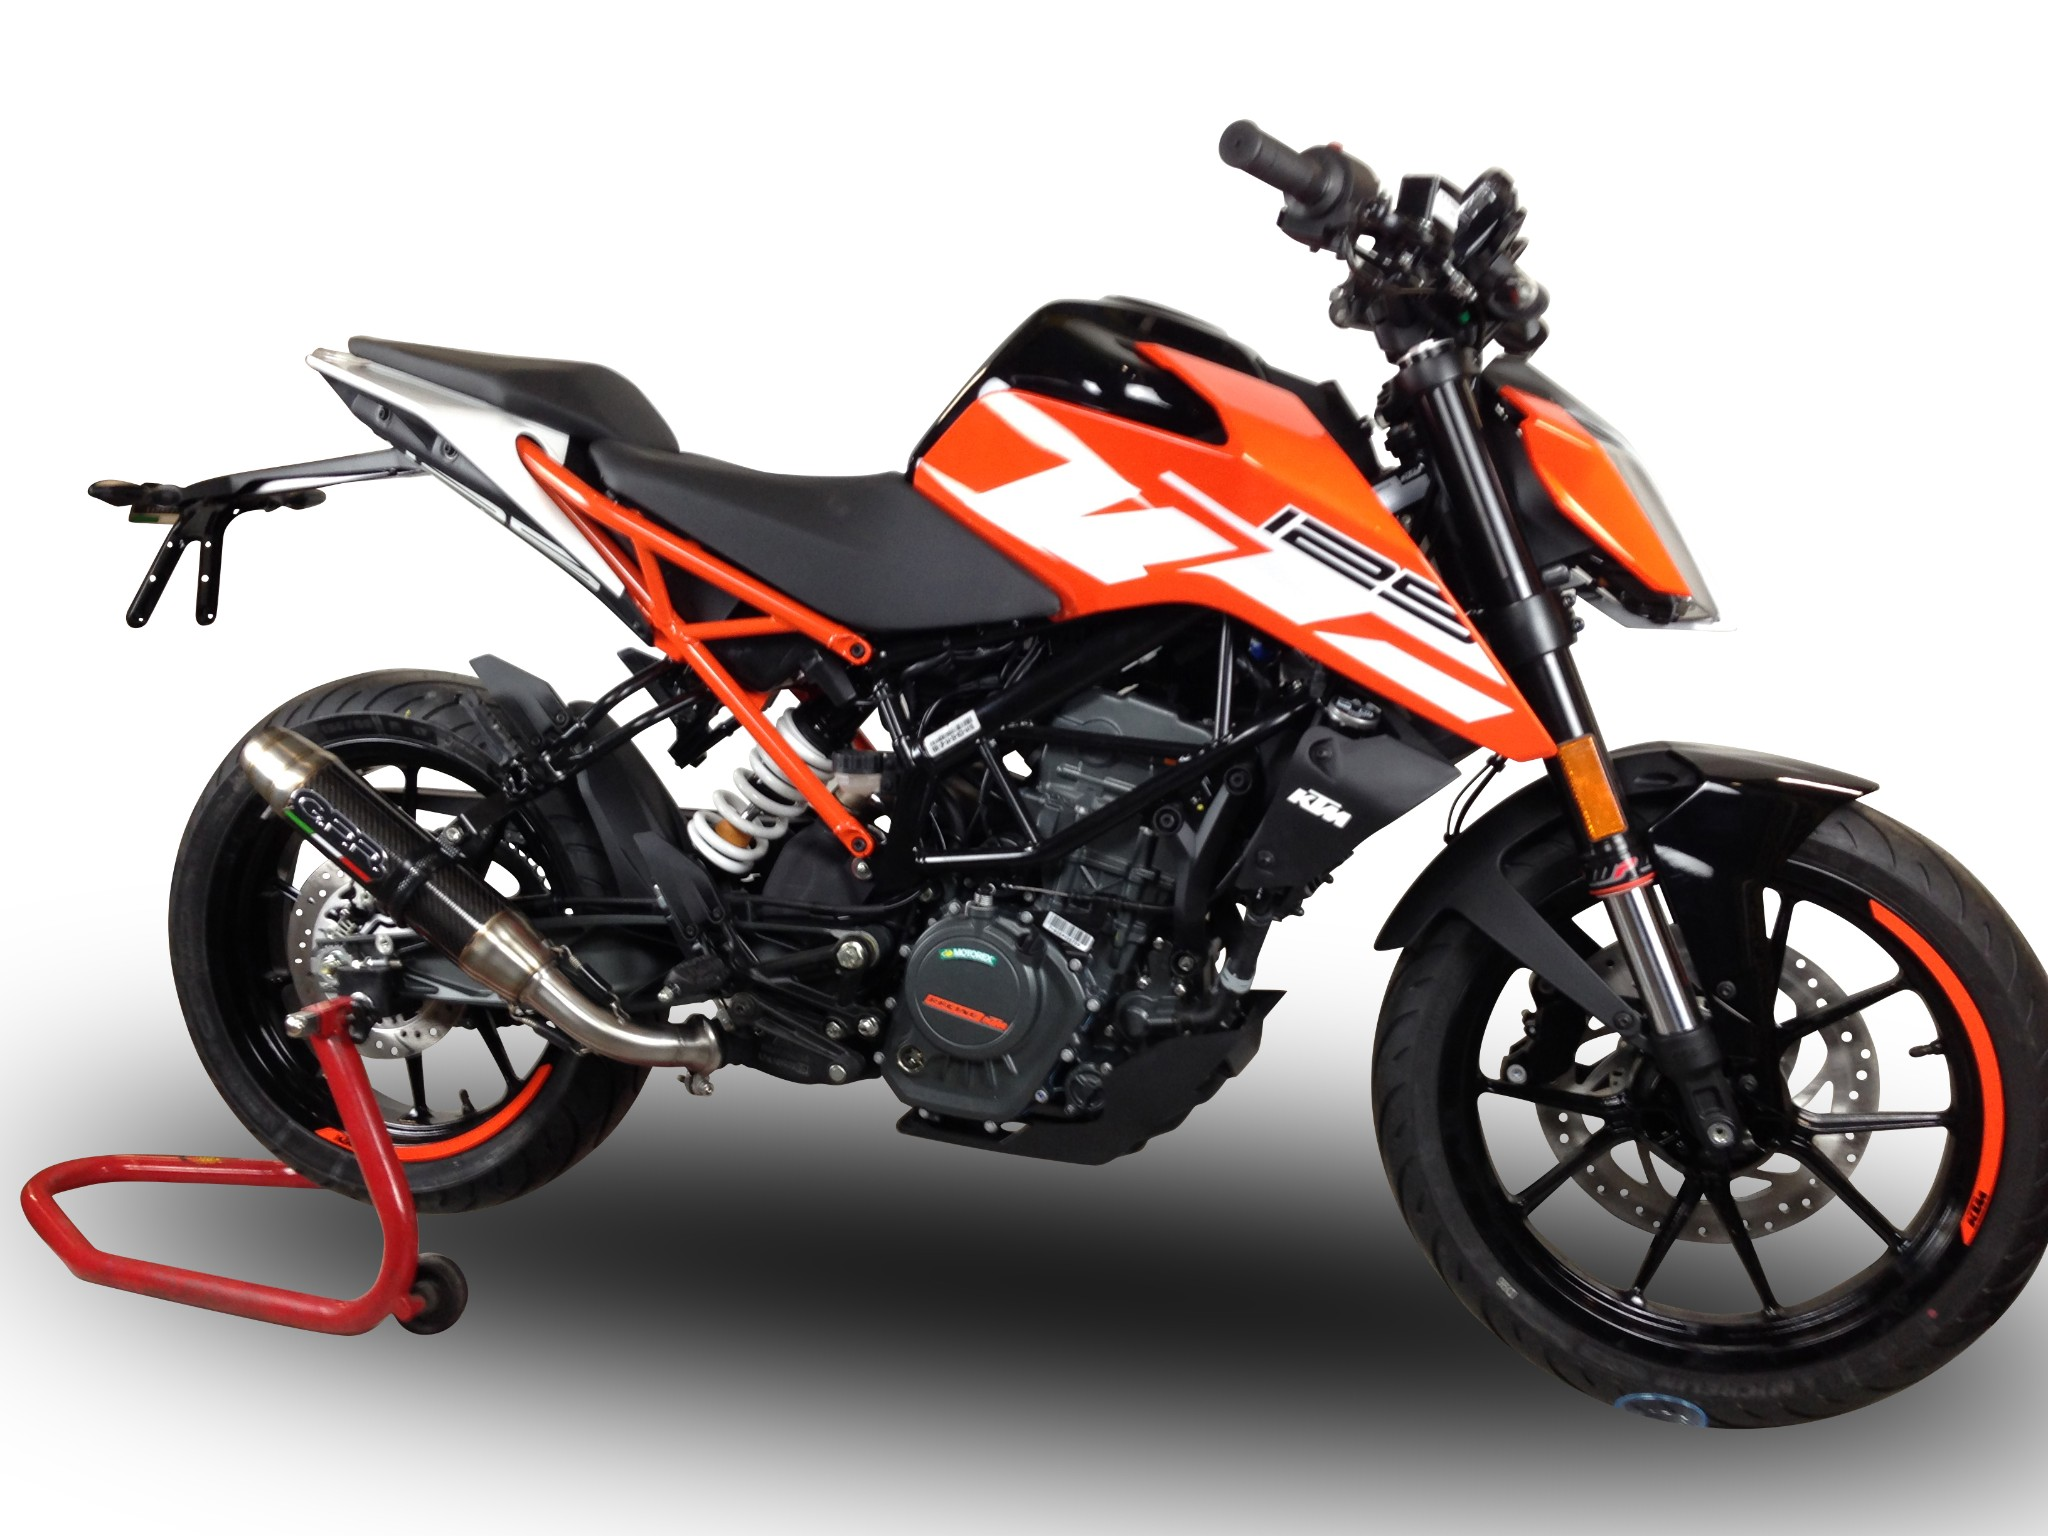 ktm duke 125 2017 2018 gpr exhaust slip on silencer deeptone cf new ebay. Black Bedroom Furniture Sets. Home Design Ideas